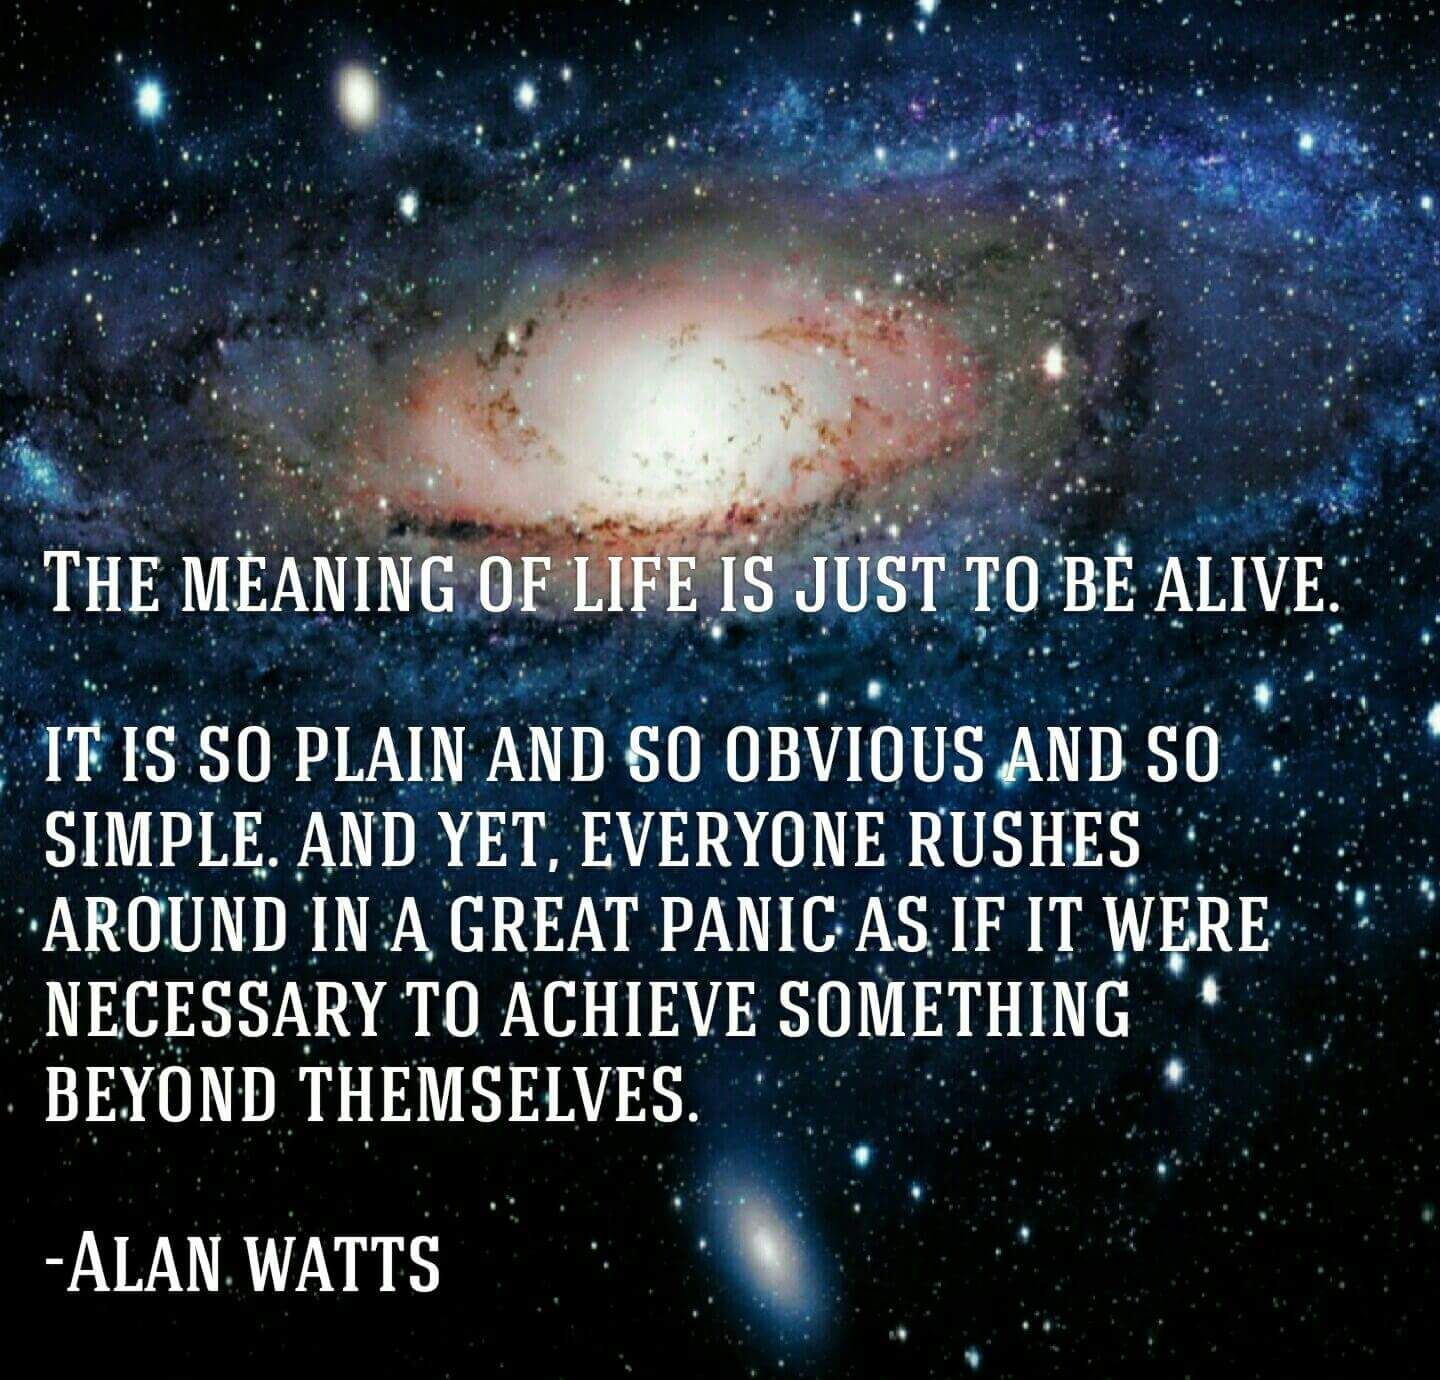 What Is The Meaning Of Life Quotes: Alan Watts Quotes - Google Search